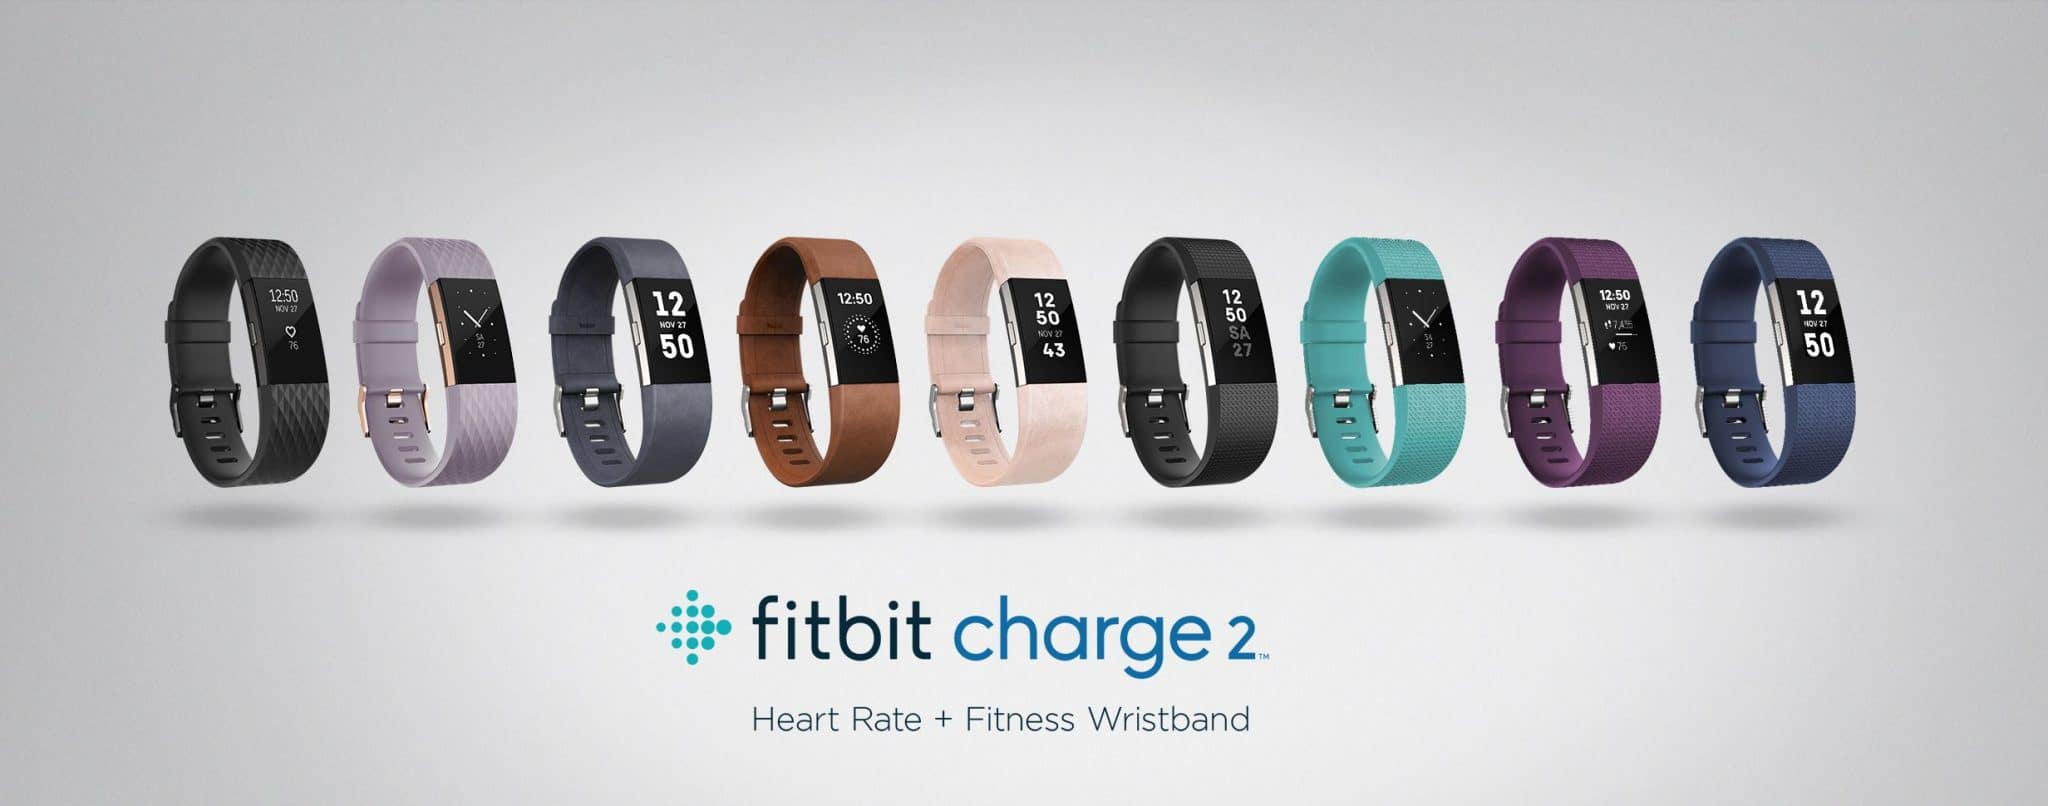 fitbit-charge-2_lineup-compressor